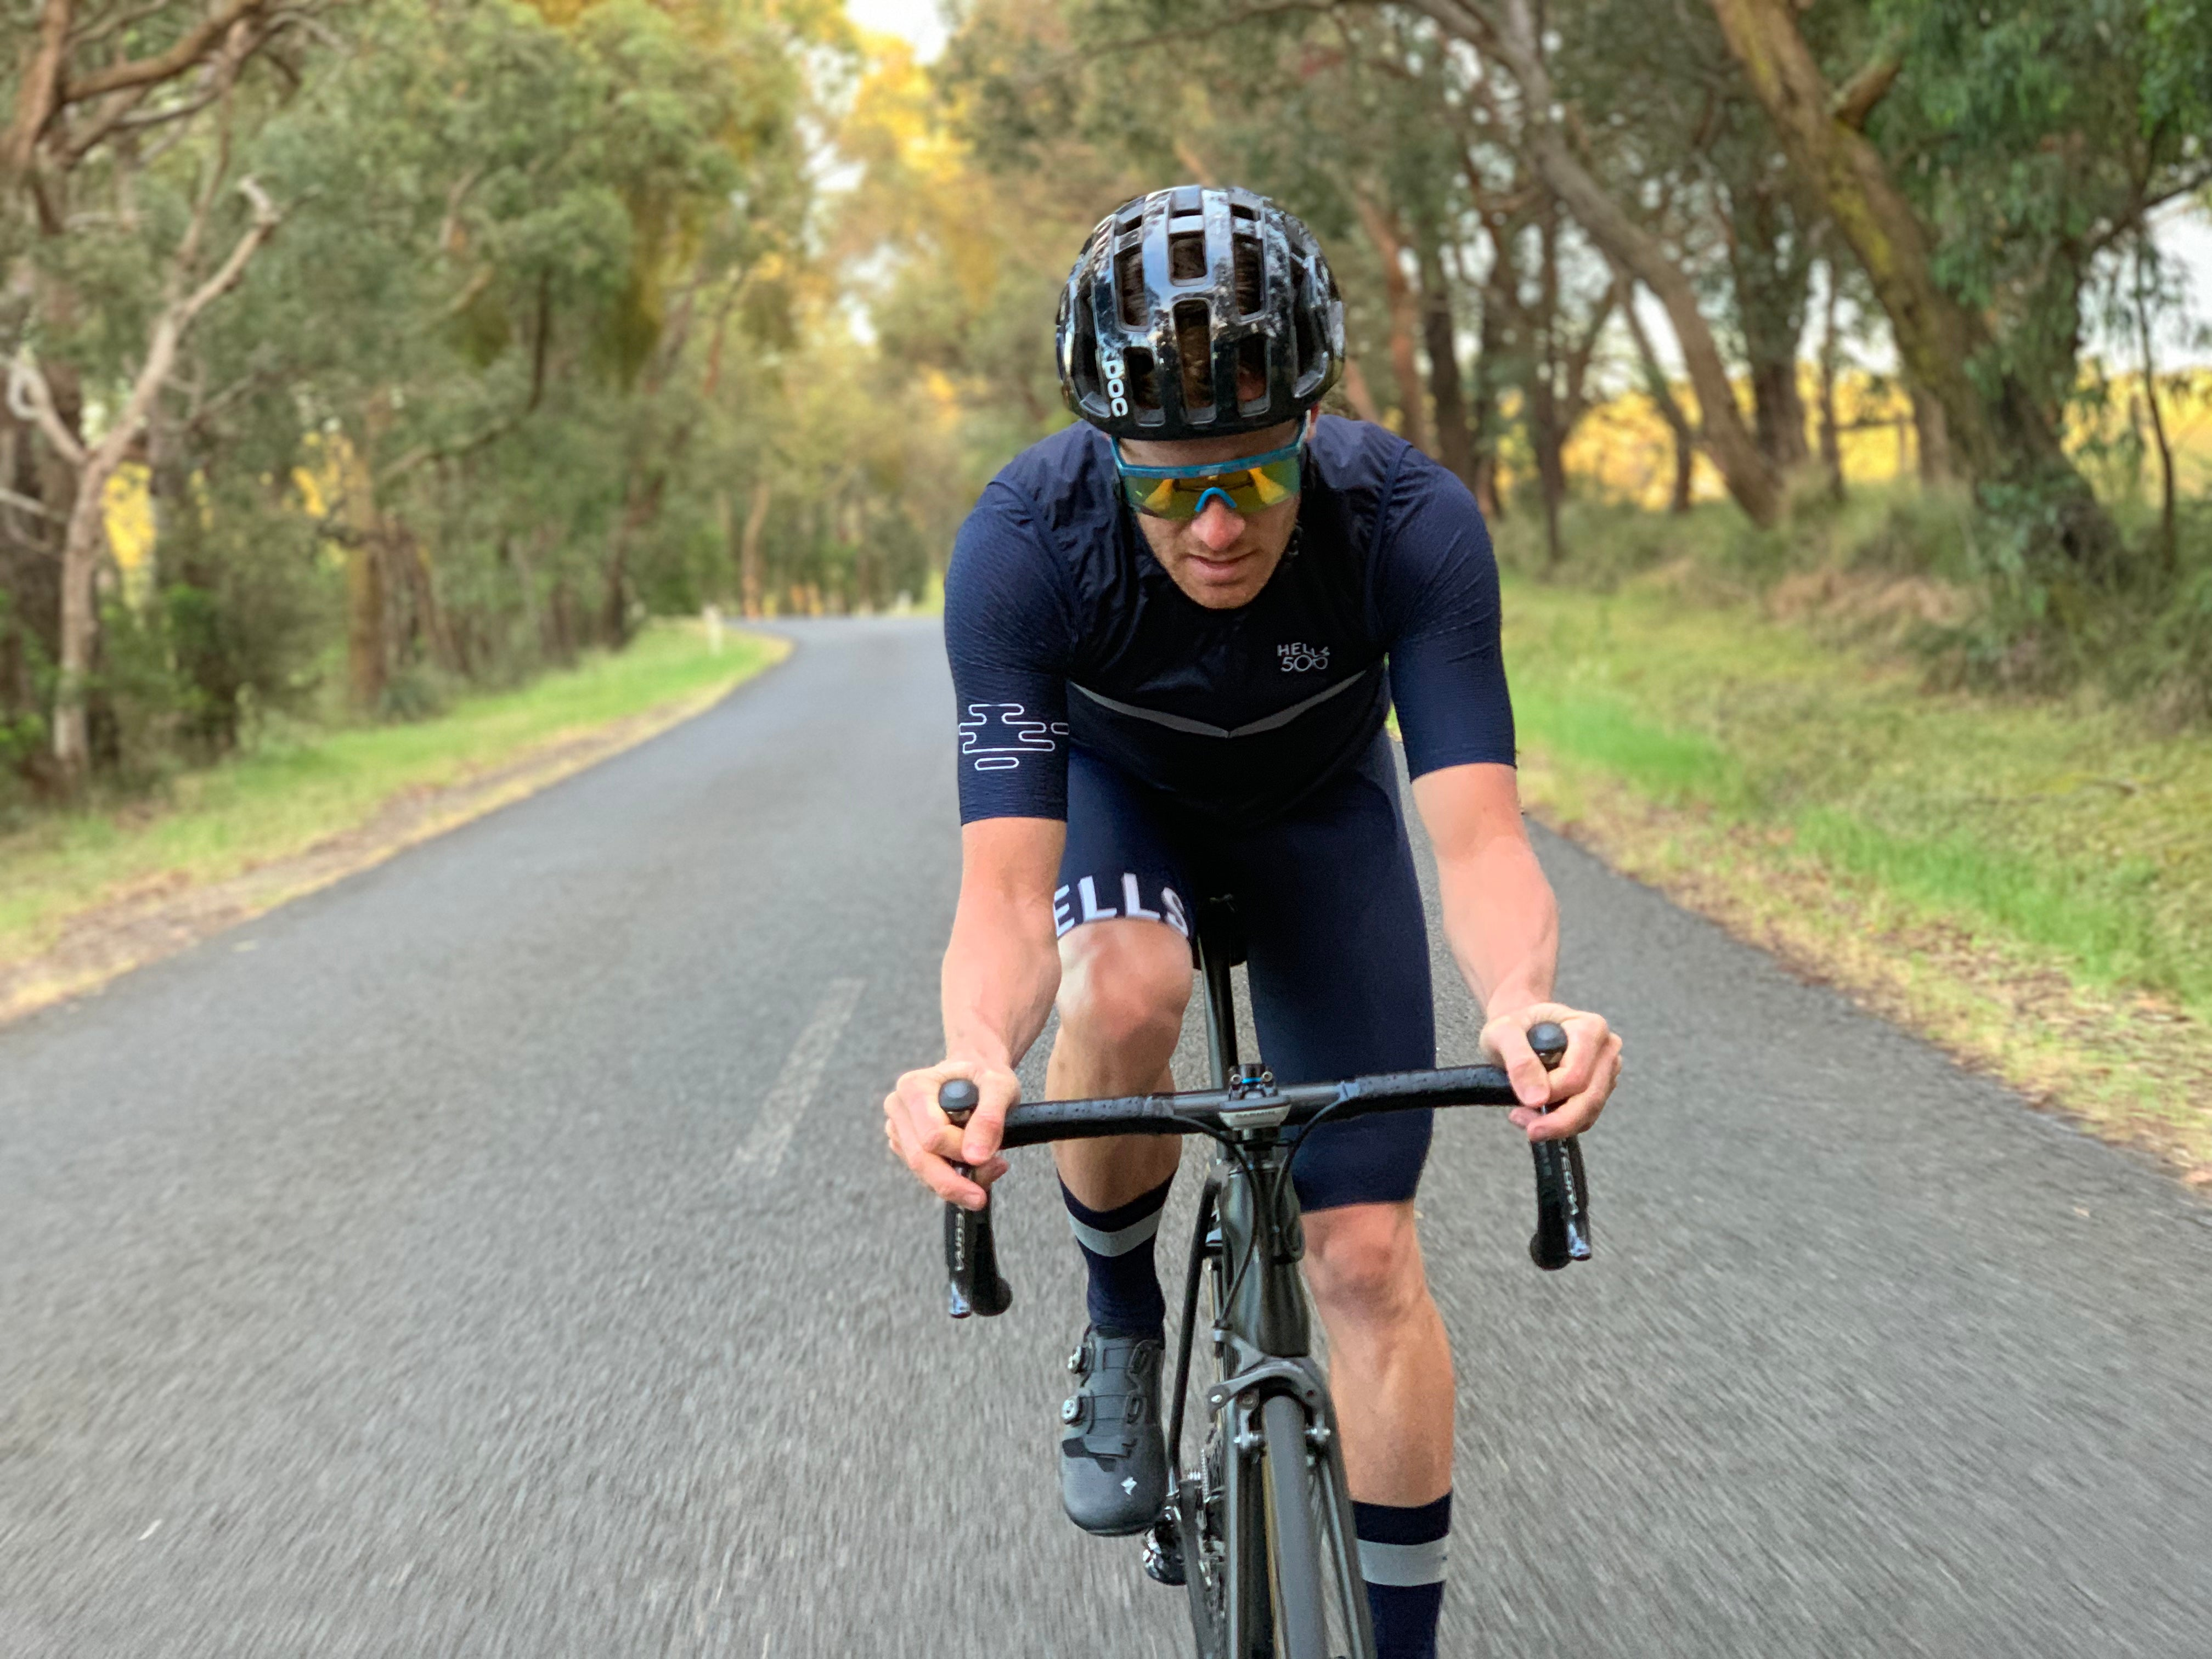 More than 1,000 cyclists completed an Everesting in May – VeloNews.com